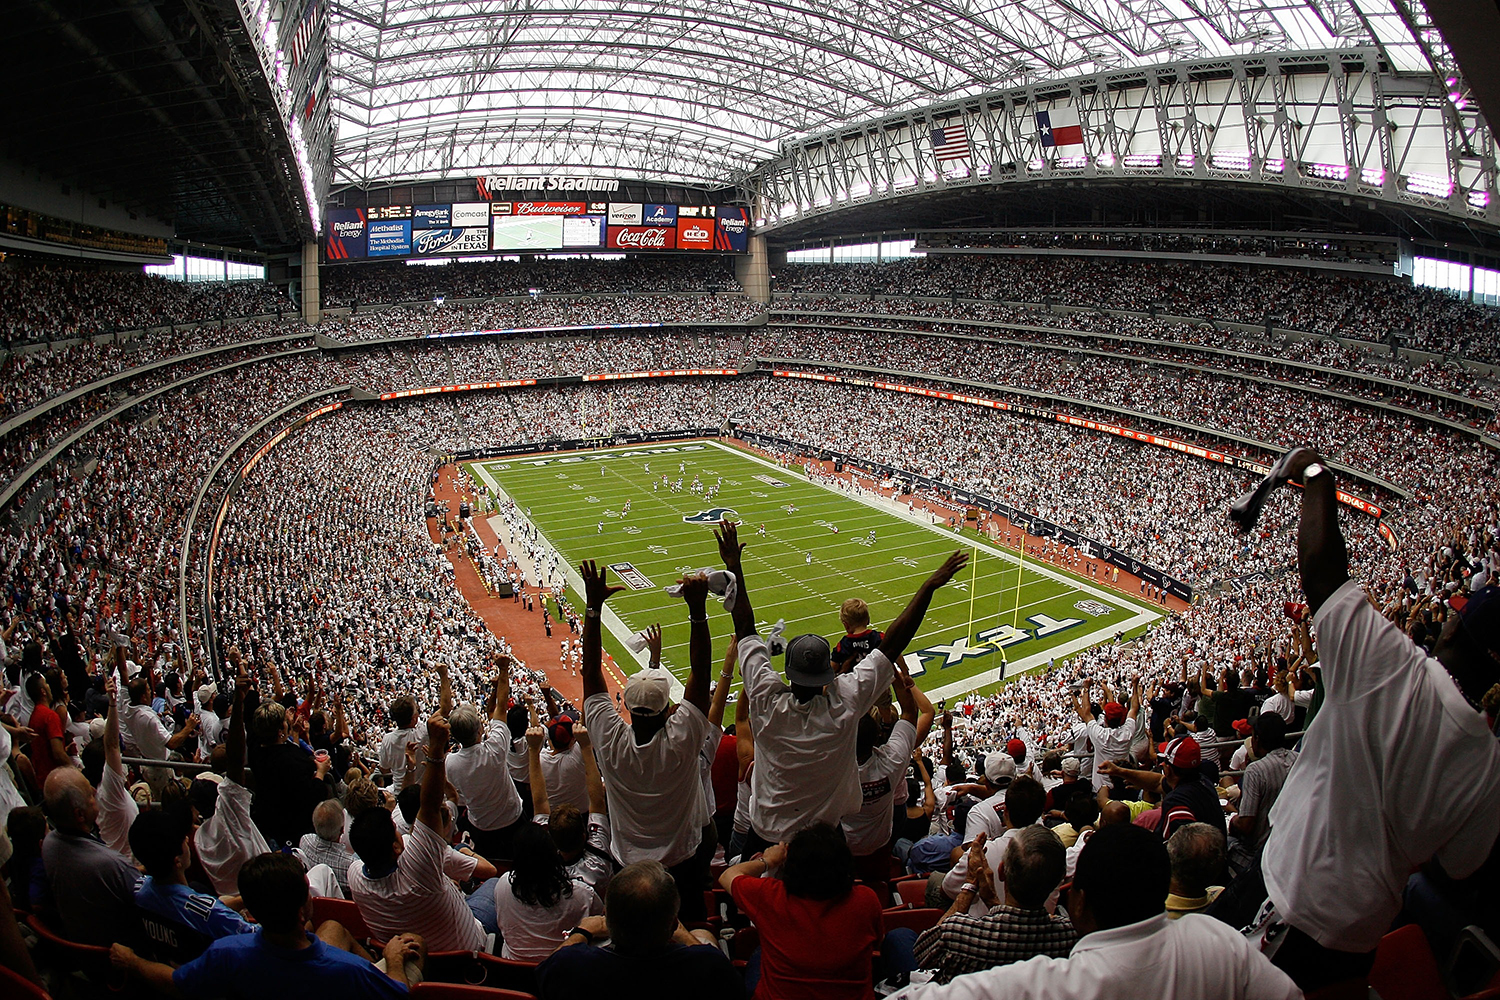 Fans celebrate a touchdown at NRG Stadium, formerly Reliant Stadium, in Houston, Texas. (Chris Graythen/Getty Images)